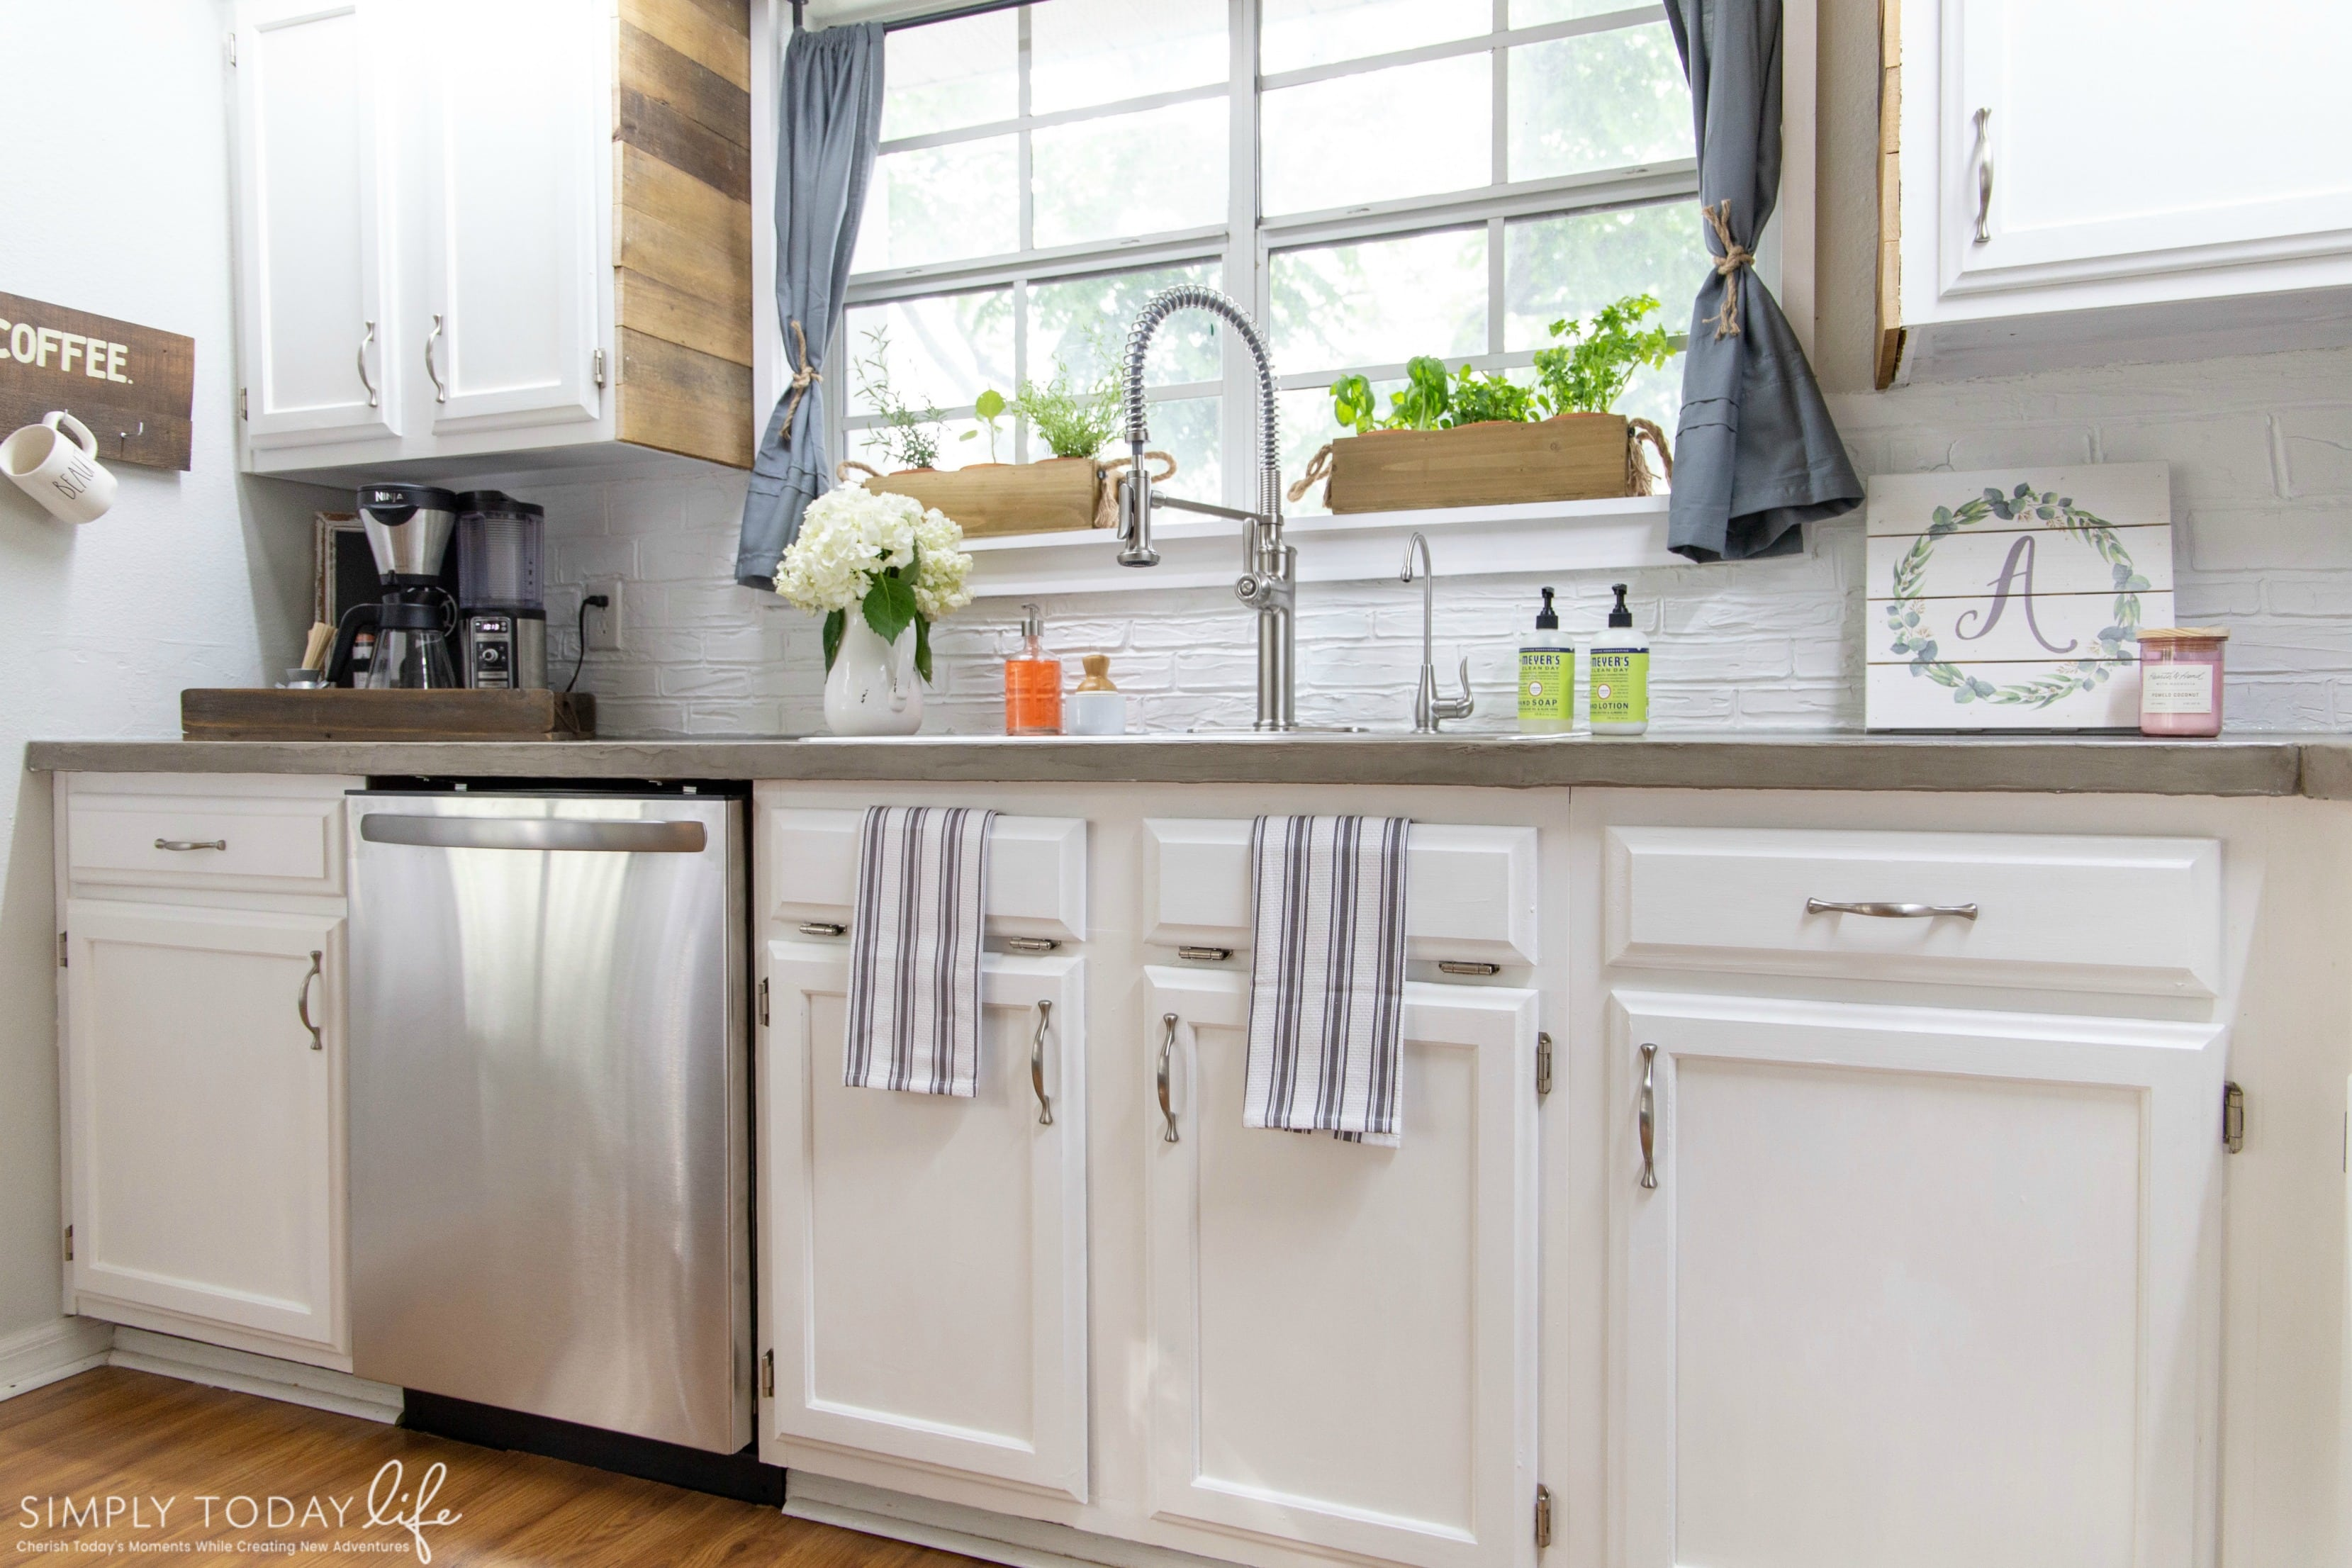 Kitchen Farmhouse DIY Renovation Paint Cabinets - simplytodaylife.com